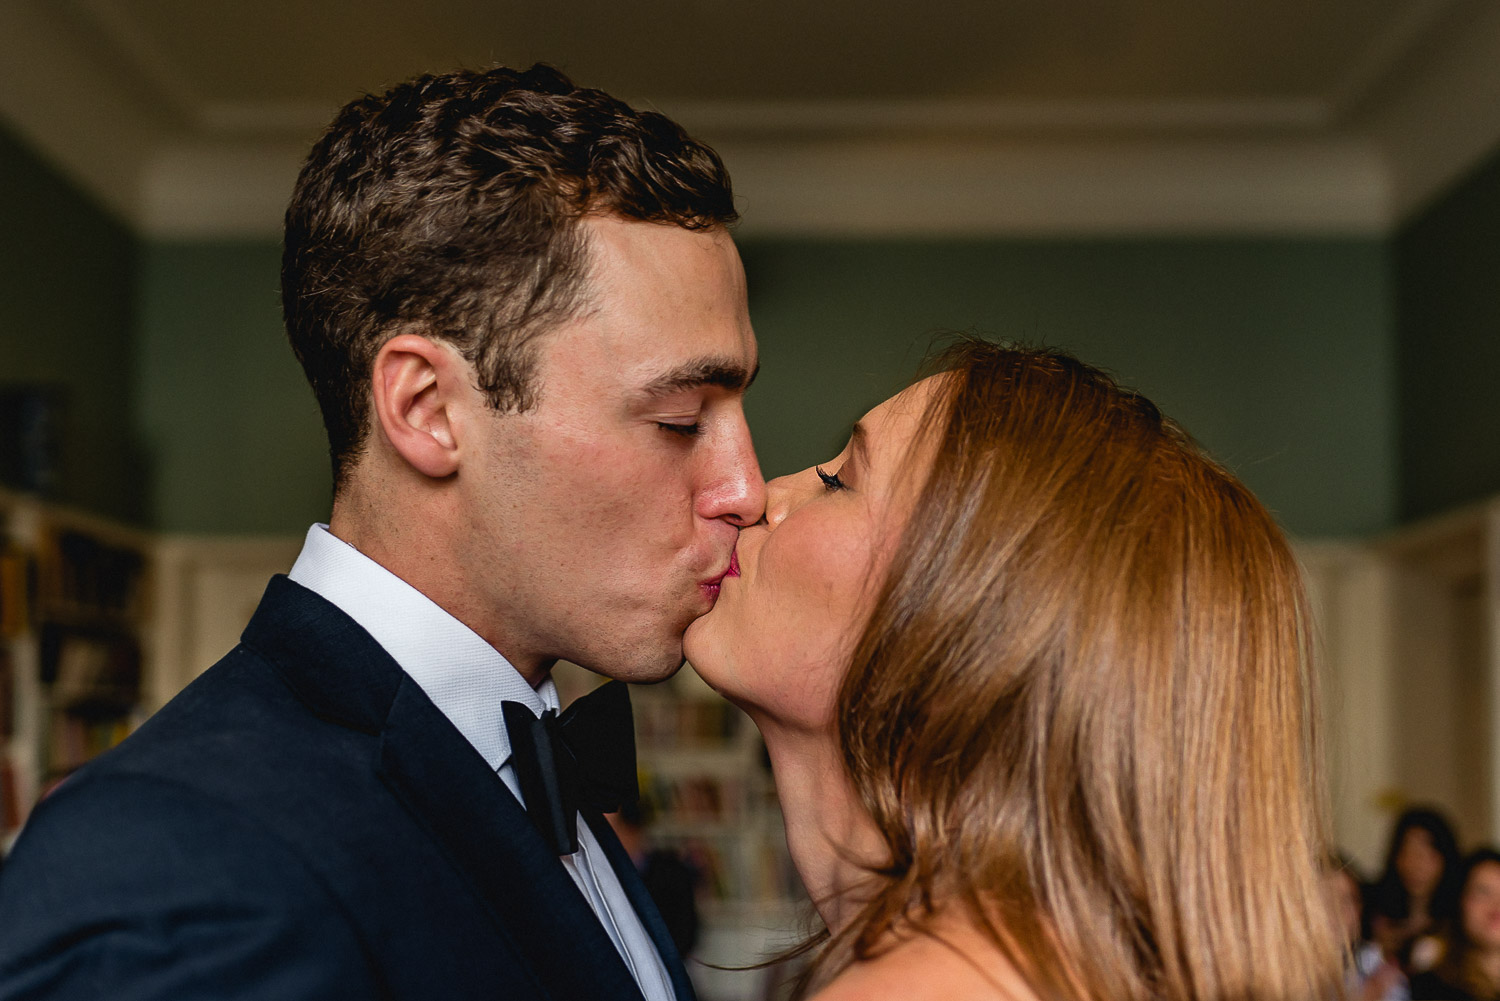 Bride & Groom first kiss at Asia House Wedding